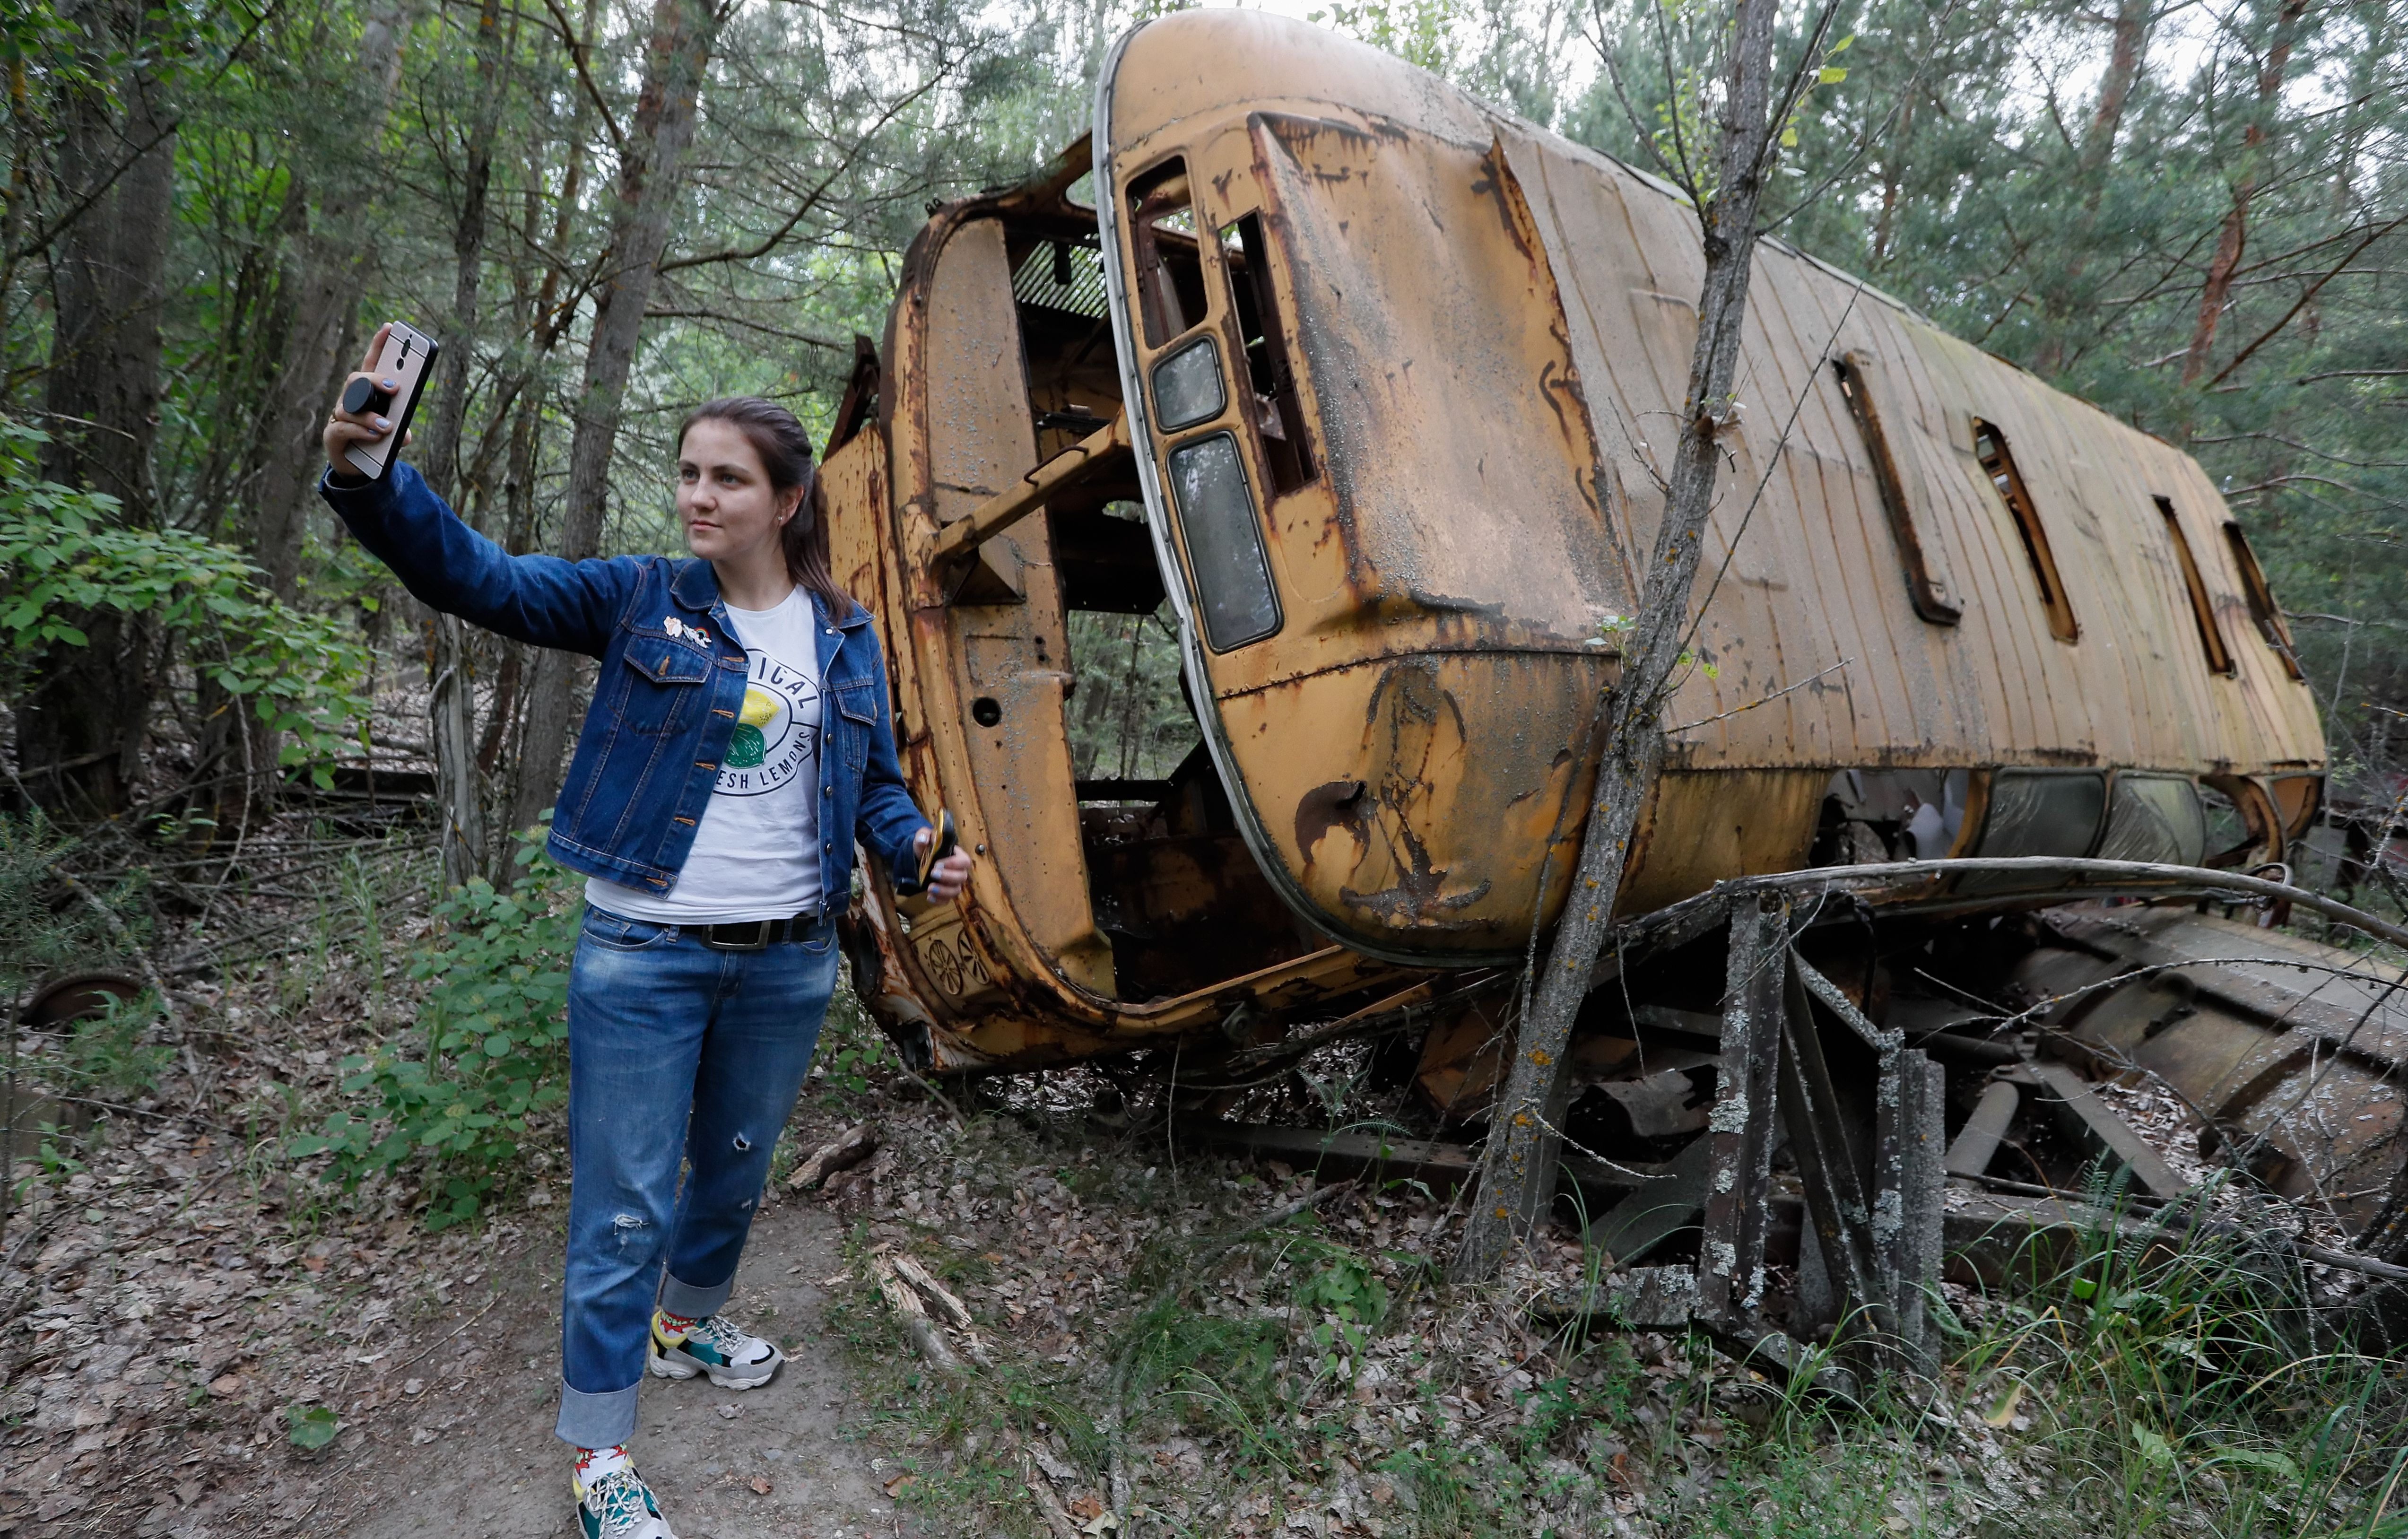 Thanks to HBO, more tourists are flocking to the eerie Chernobyl